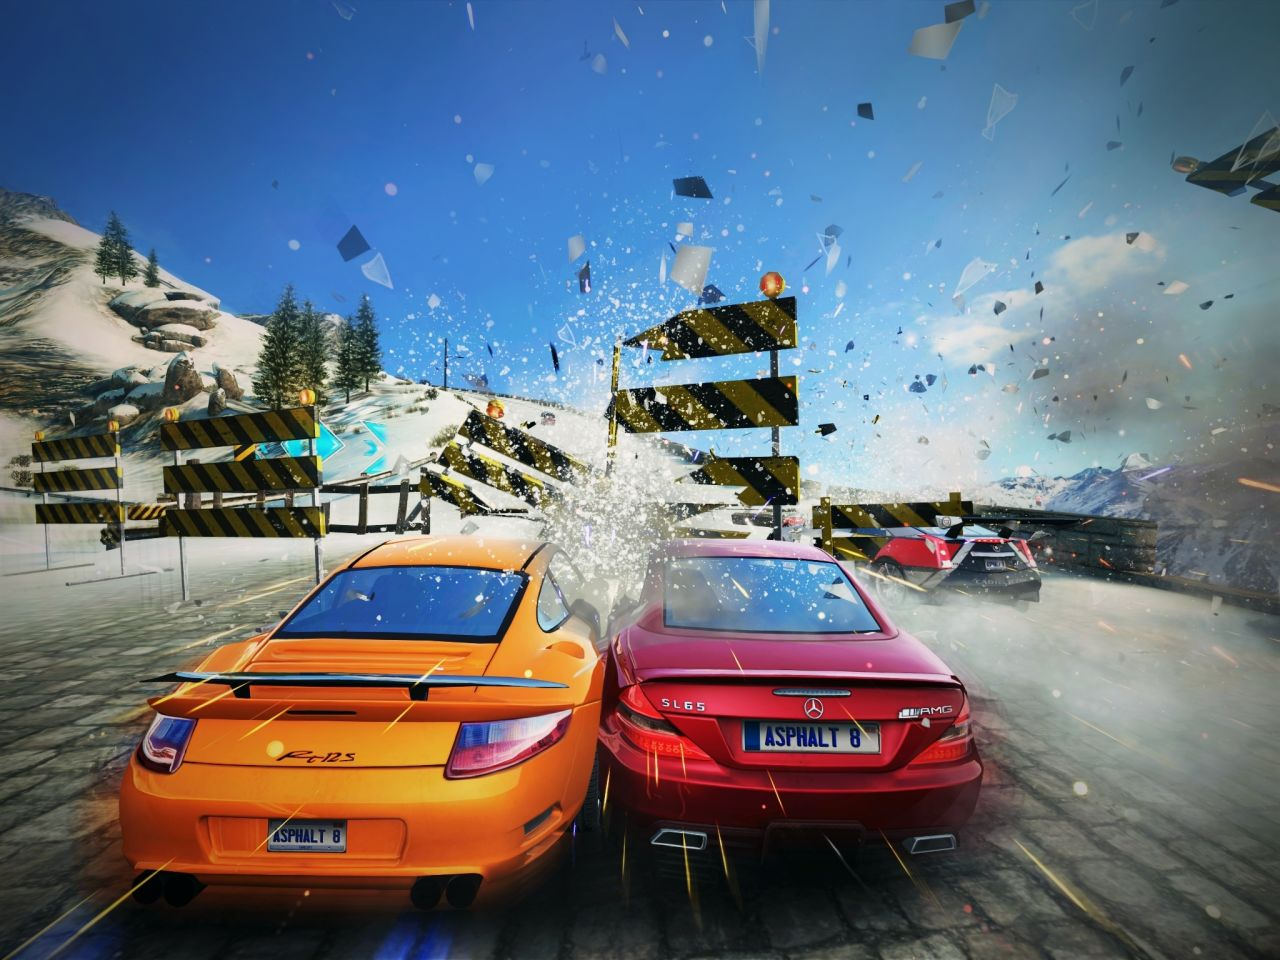 Asphalt8_screen_2048x1536_65_V01